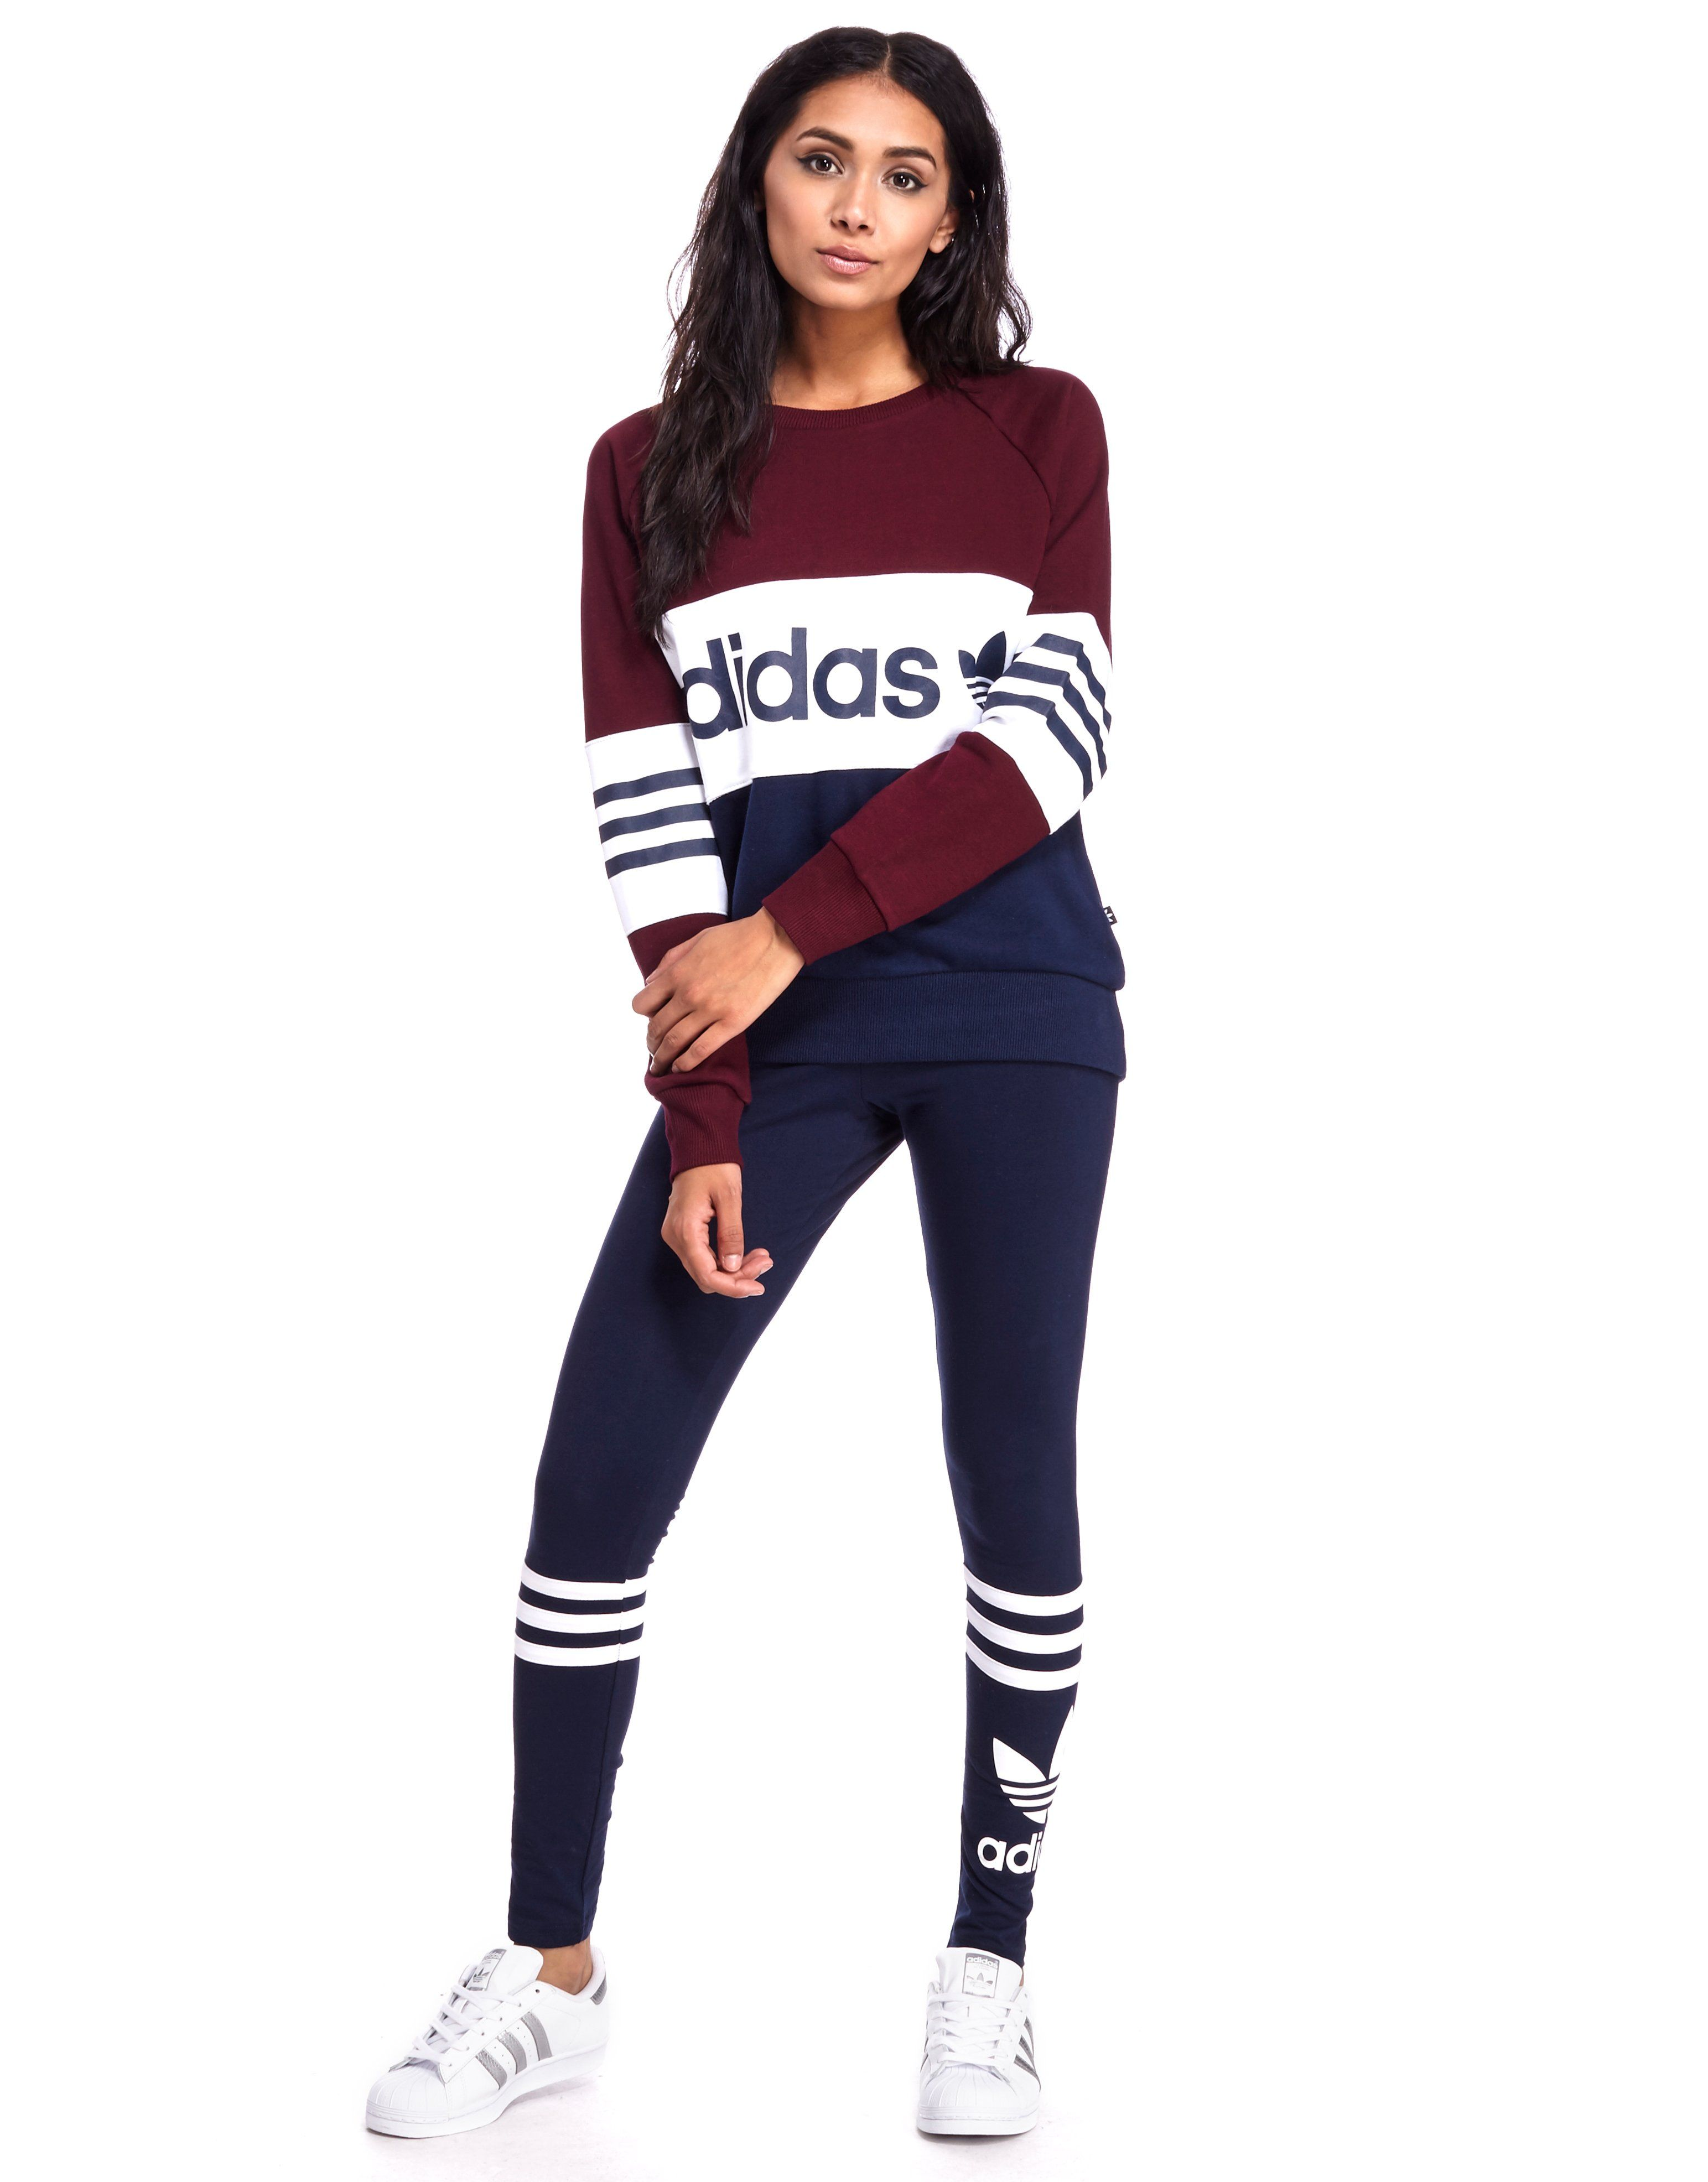 Jd Adidas Jumper Women'S